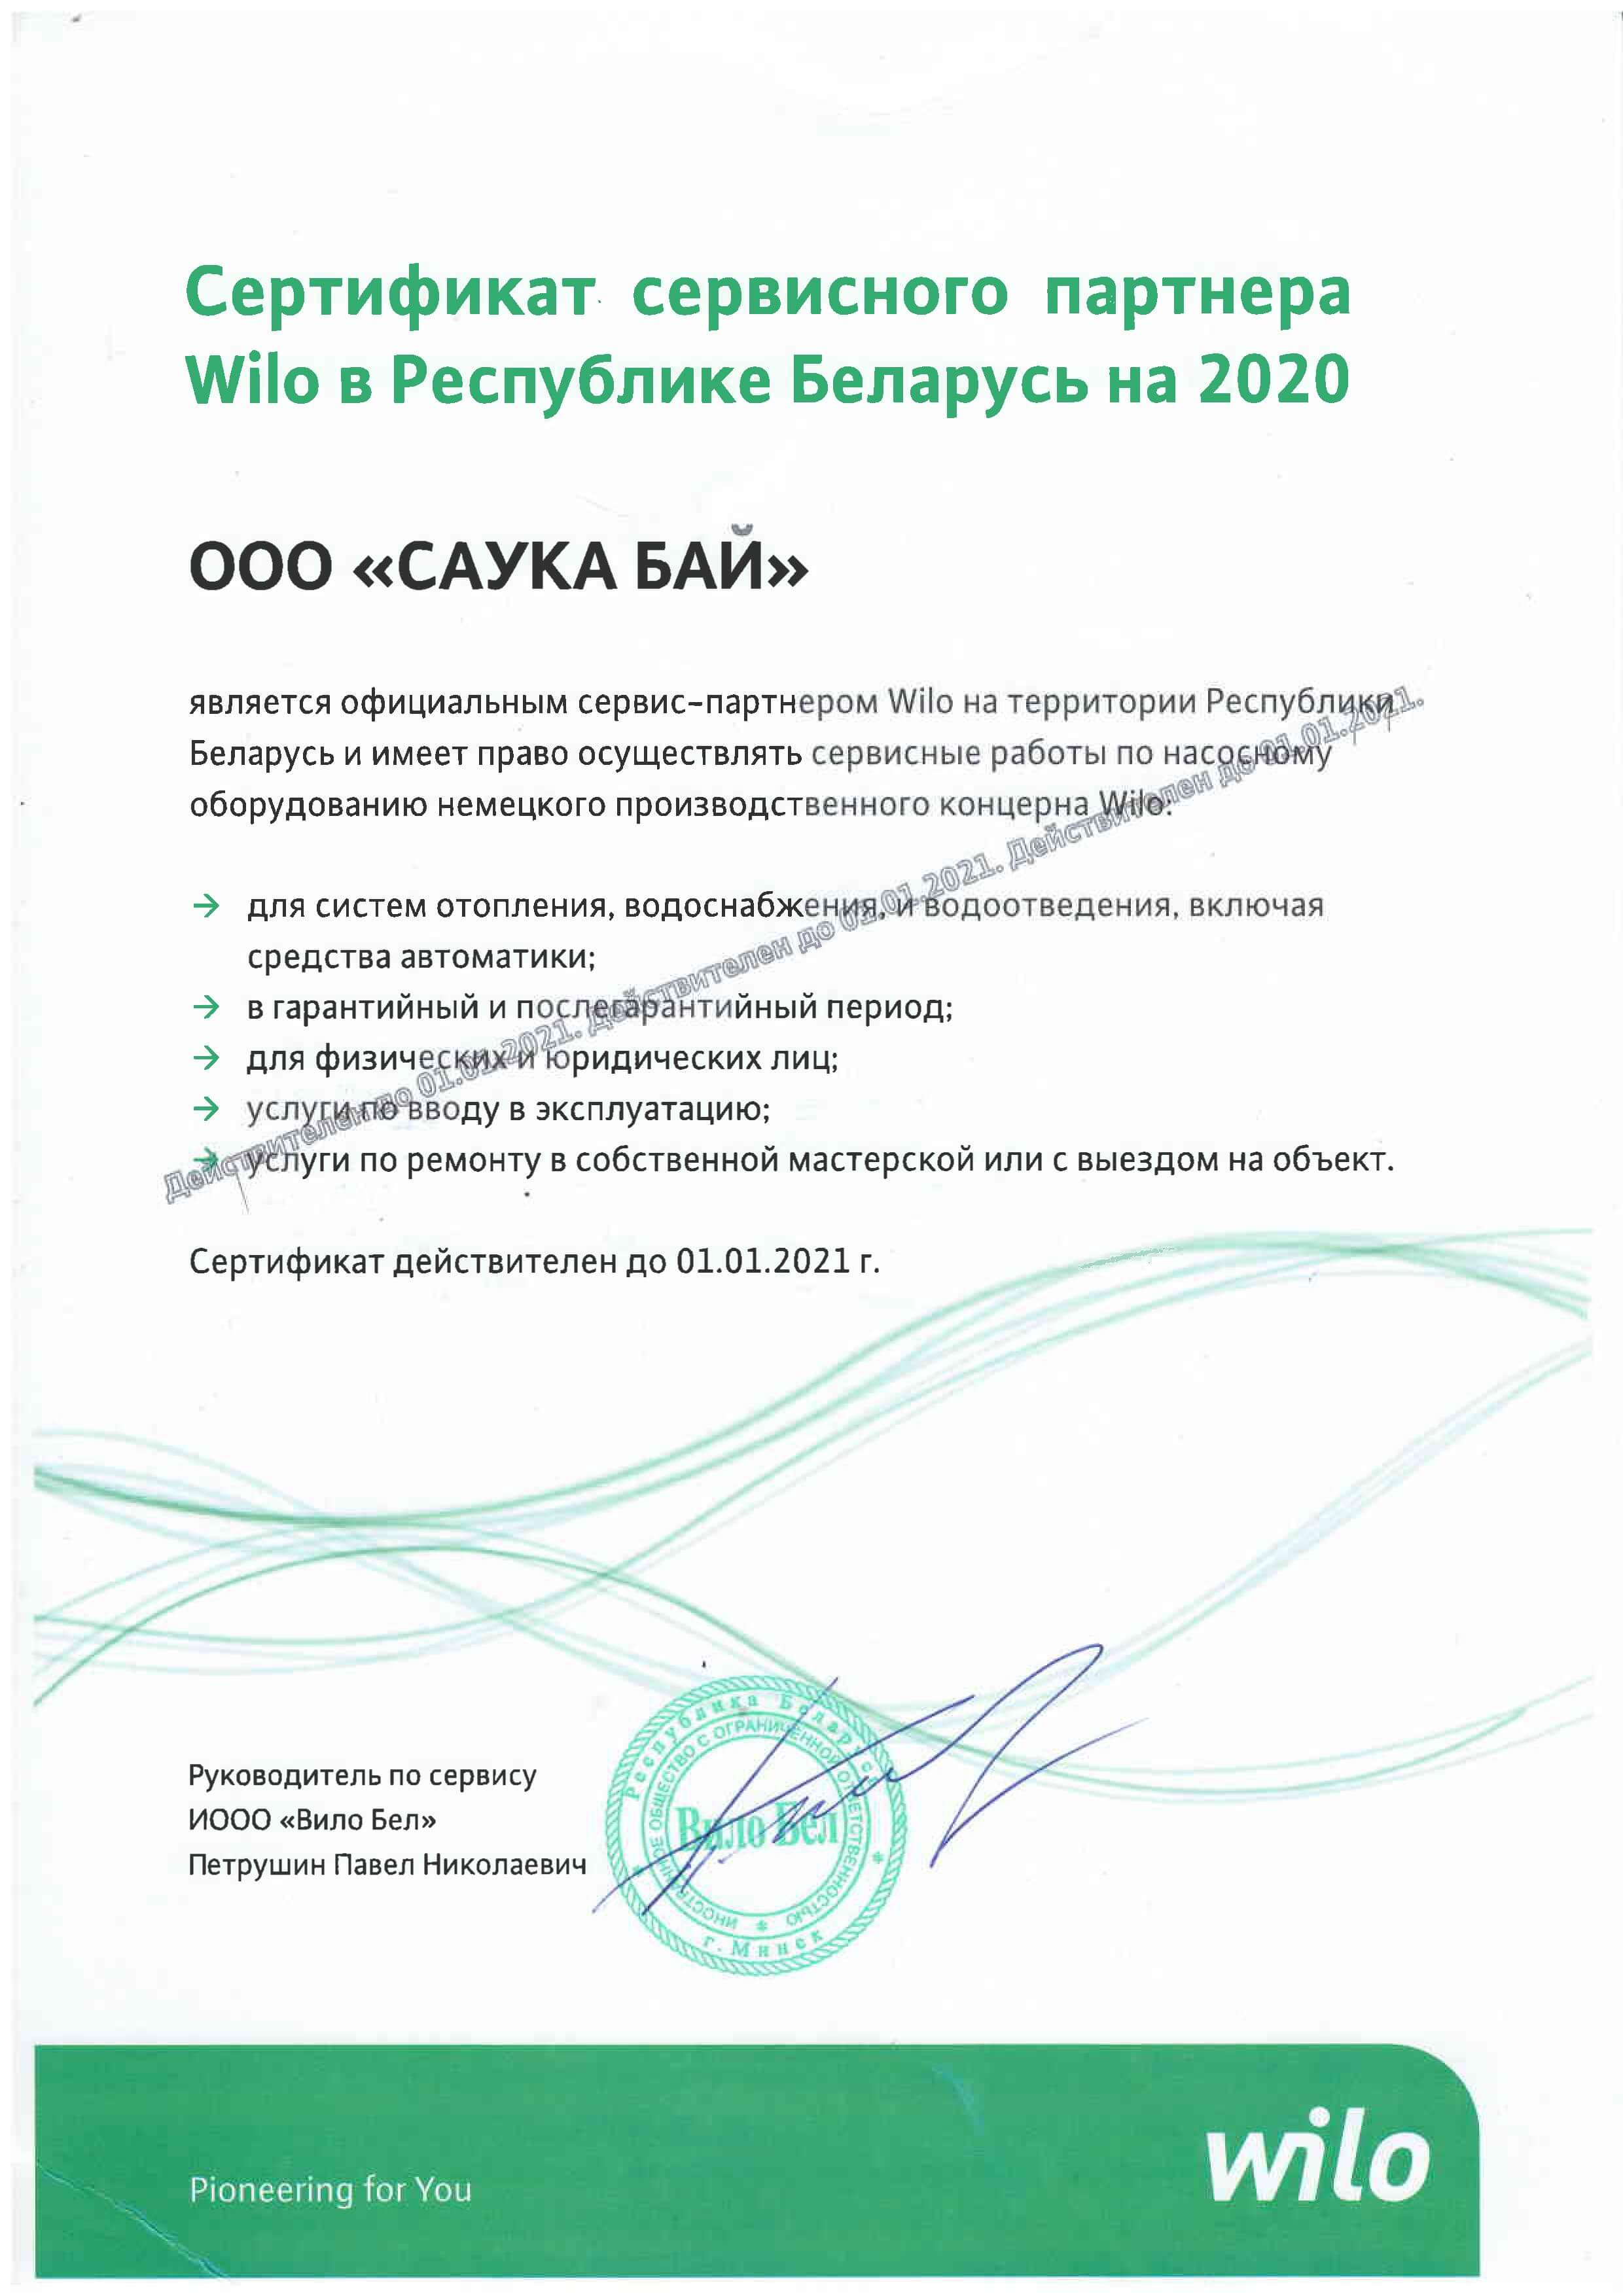 Certificate willo 2020 tiny